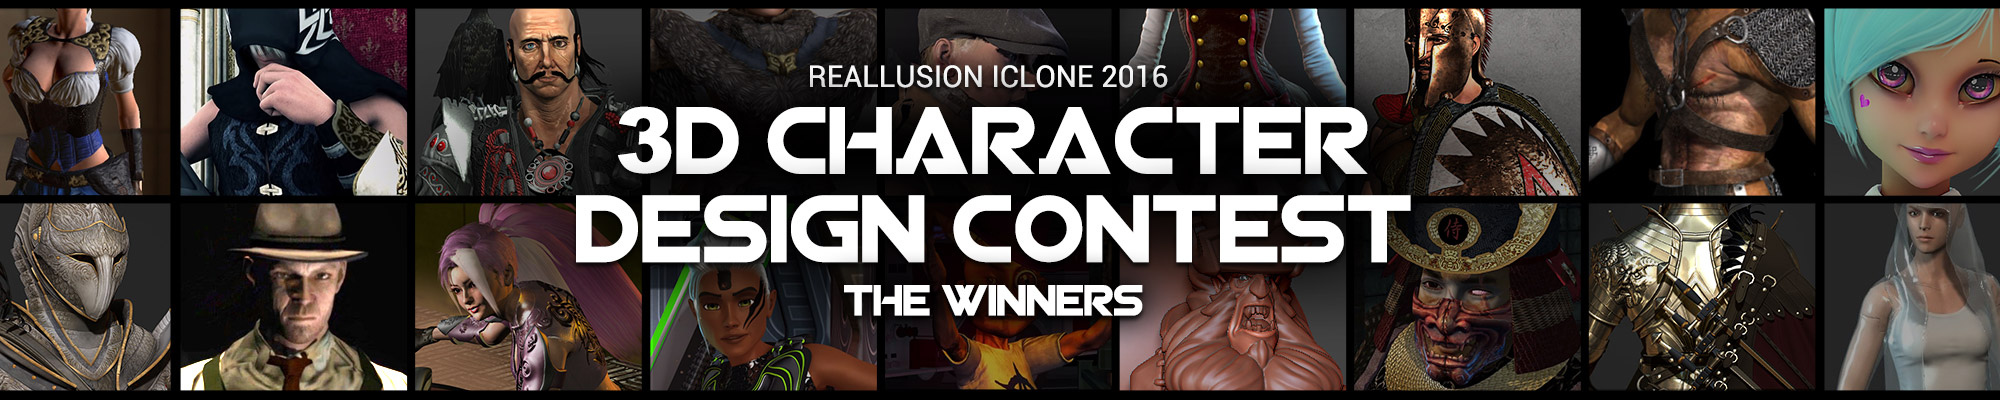 iClone 3D Character Design Contest - The Winners!